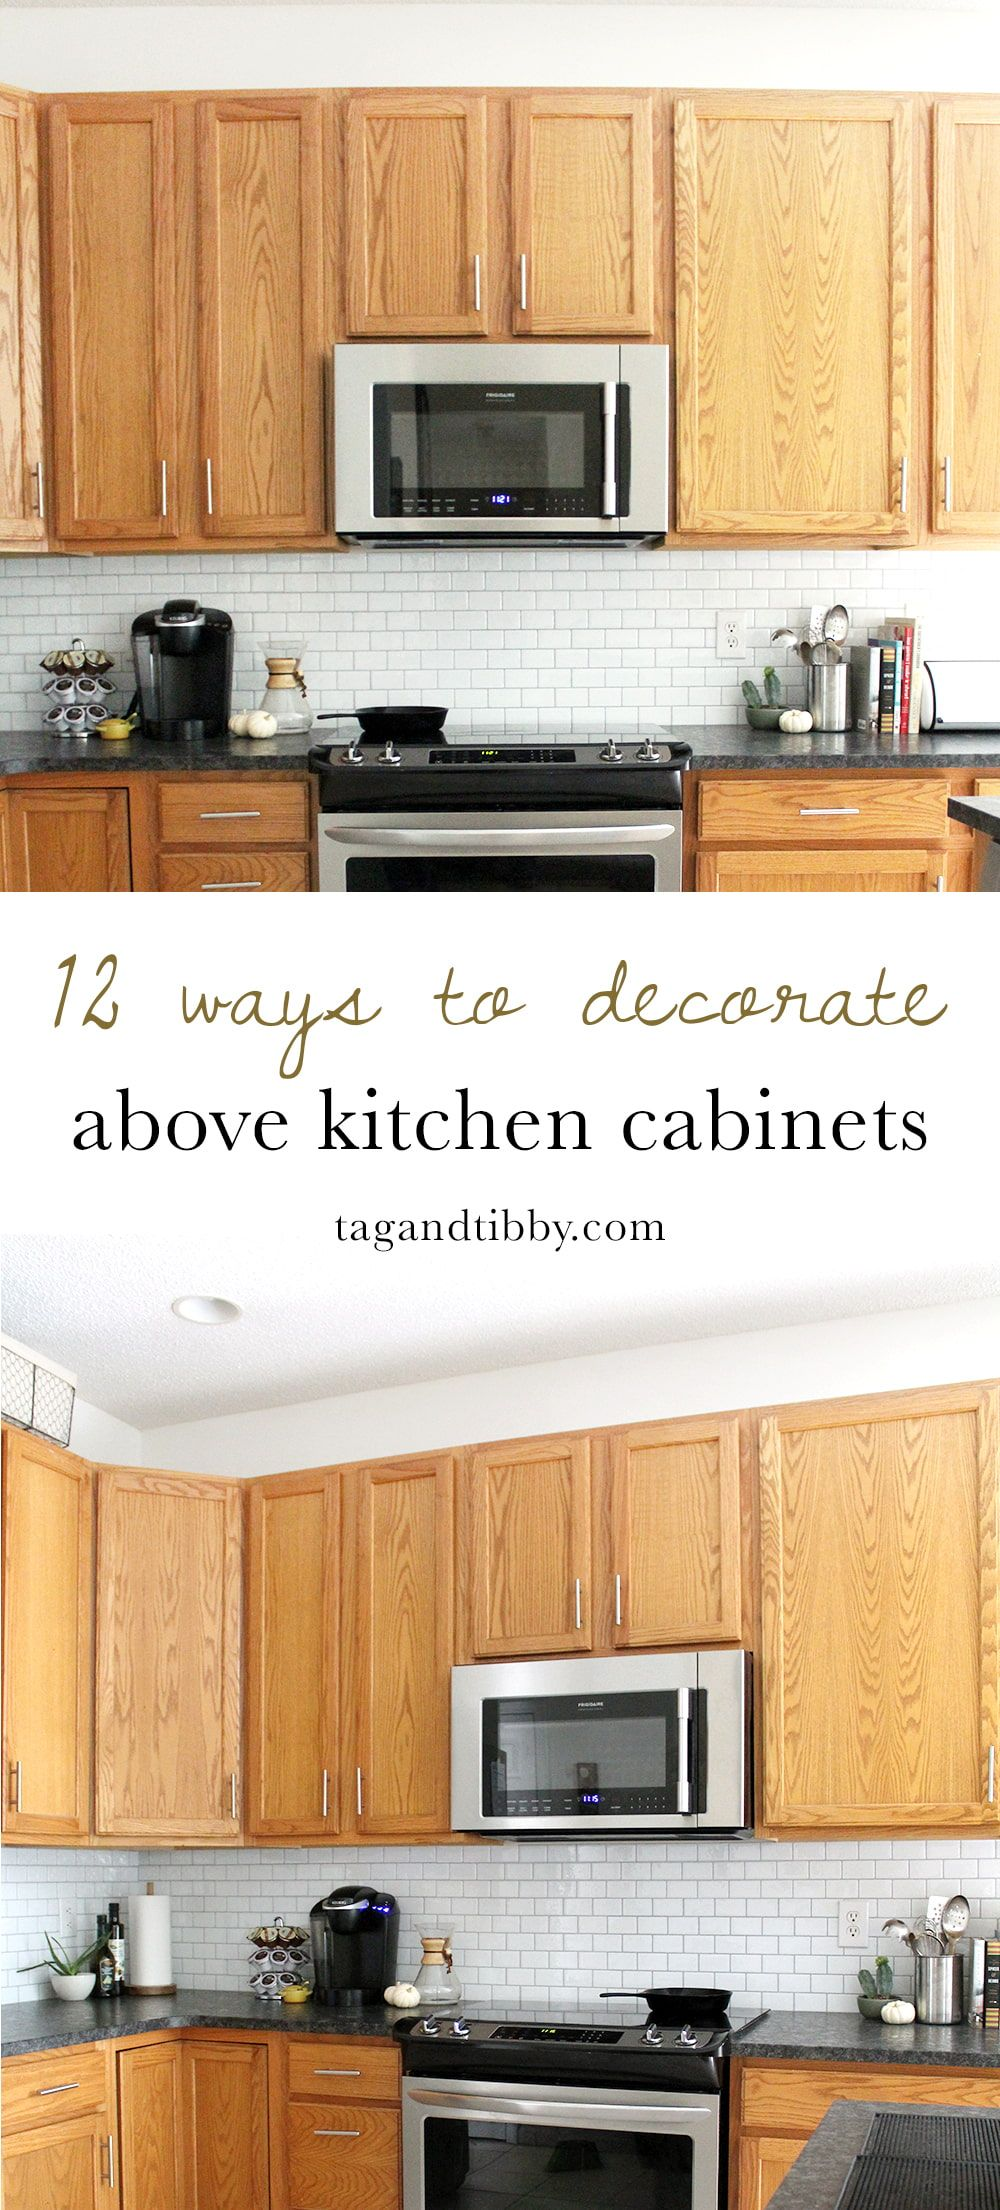 12 Ways To Decorate Above Kitchen Cabinets Tag Tibby Design Above Kitchen Cabinets Kitchen Cabinets Decor Decorating Above Kitchen Cabinets